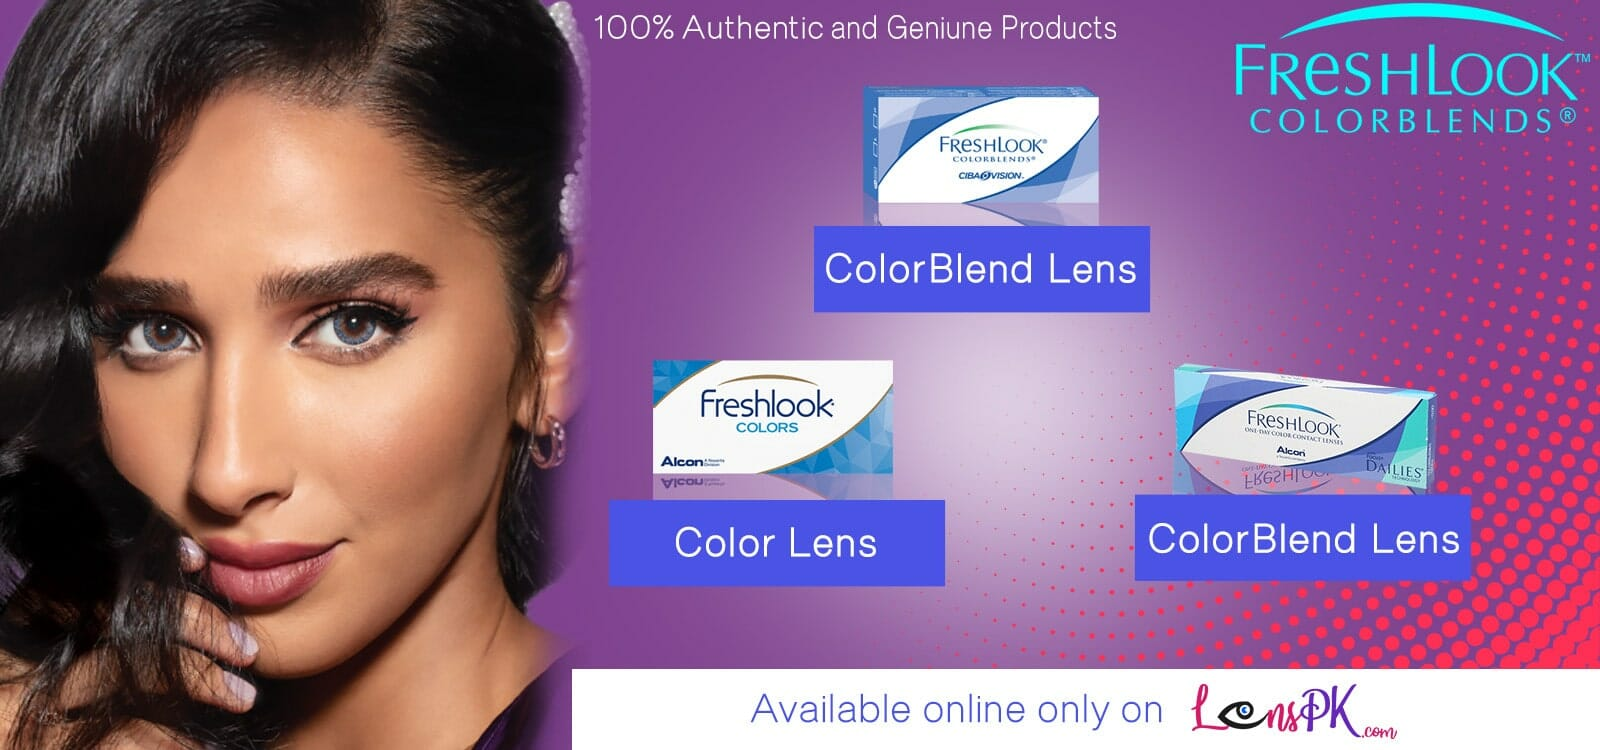 Buy Freshlook Contact Lenses Online - lenspk.com